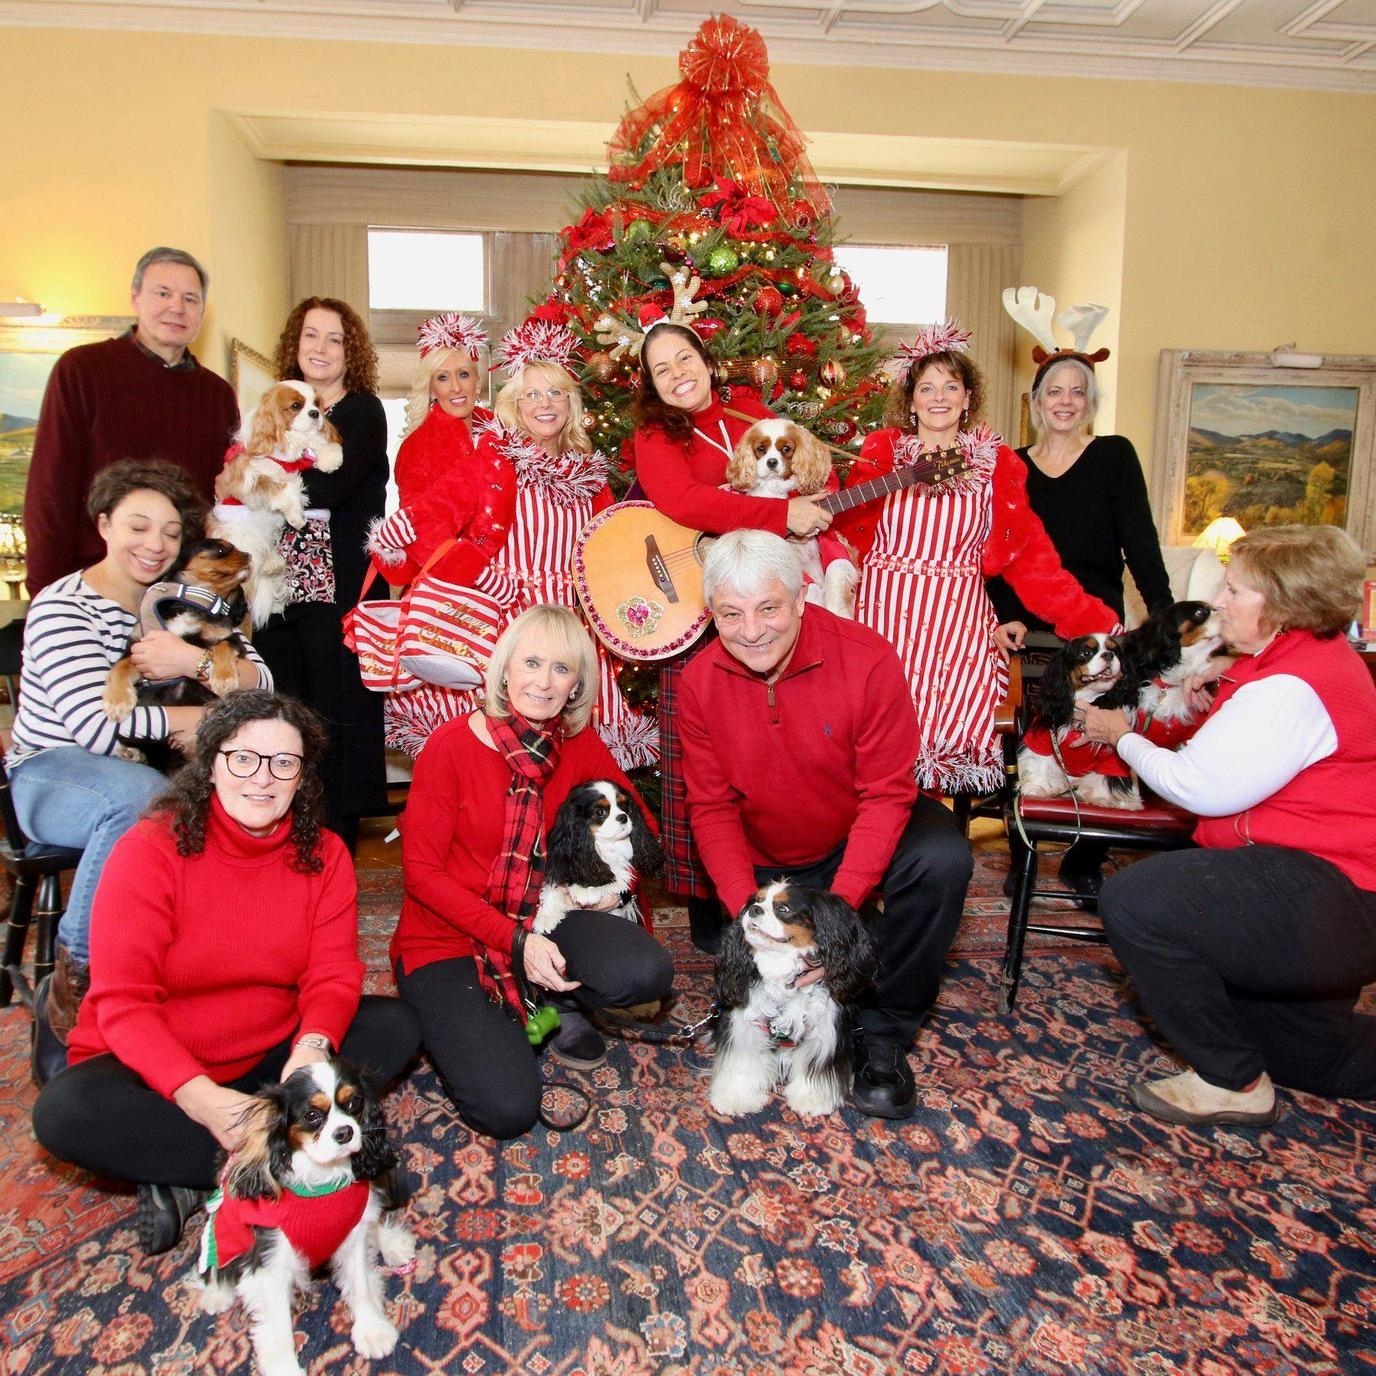 A family and their dogs having fun on Christmas